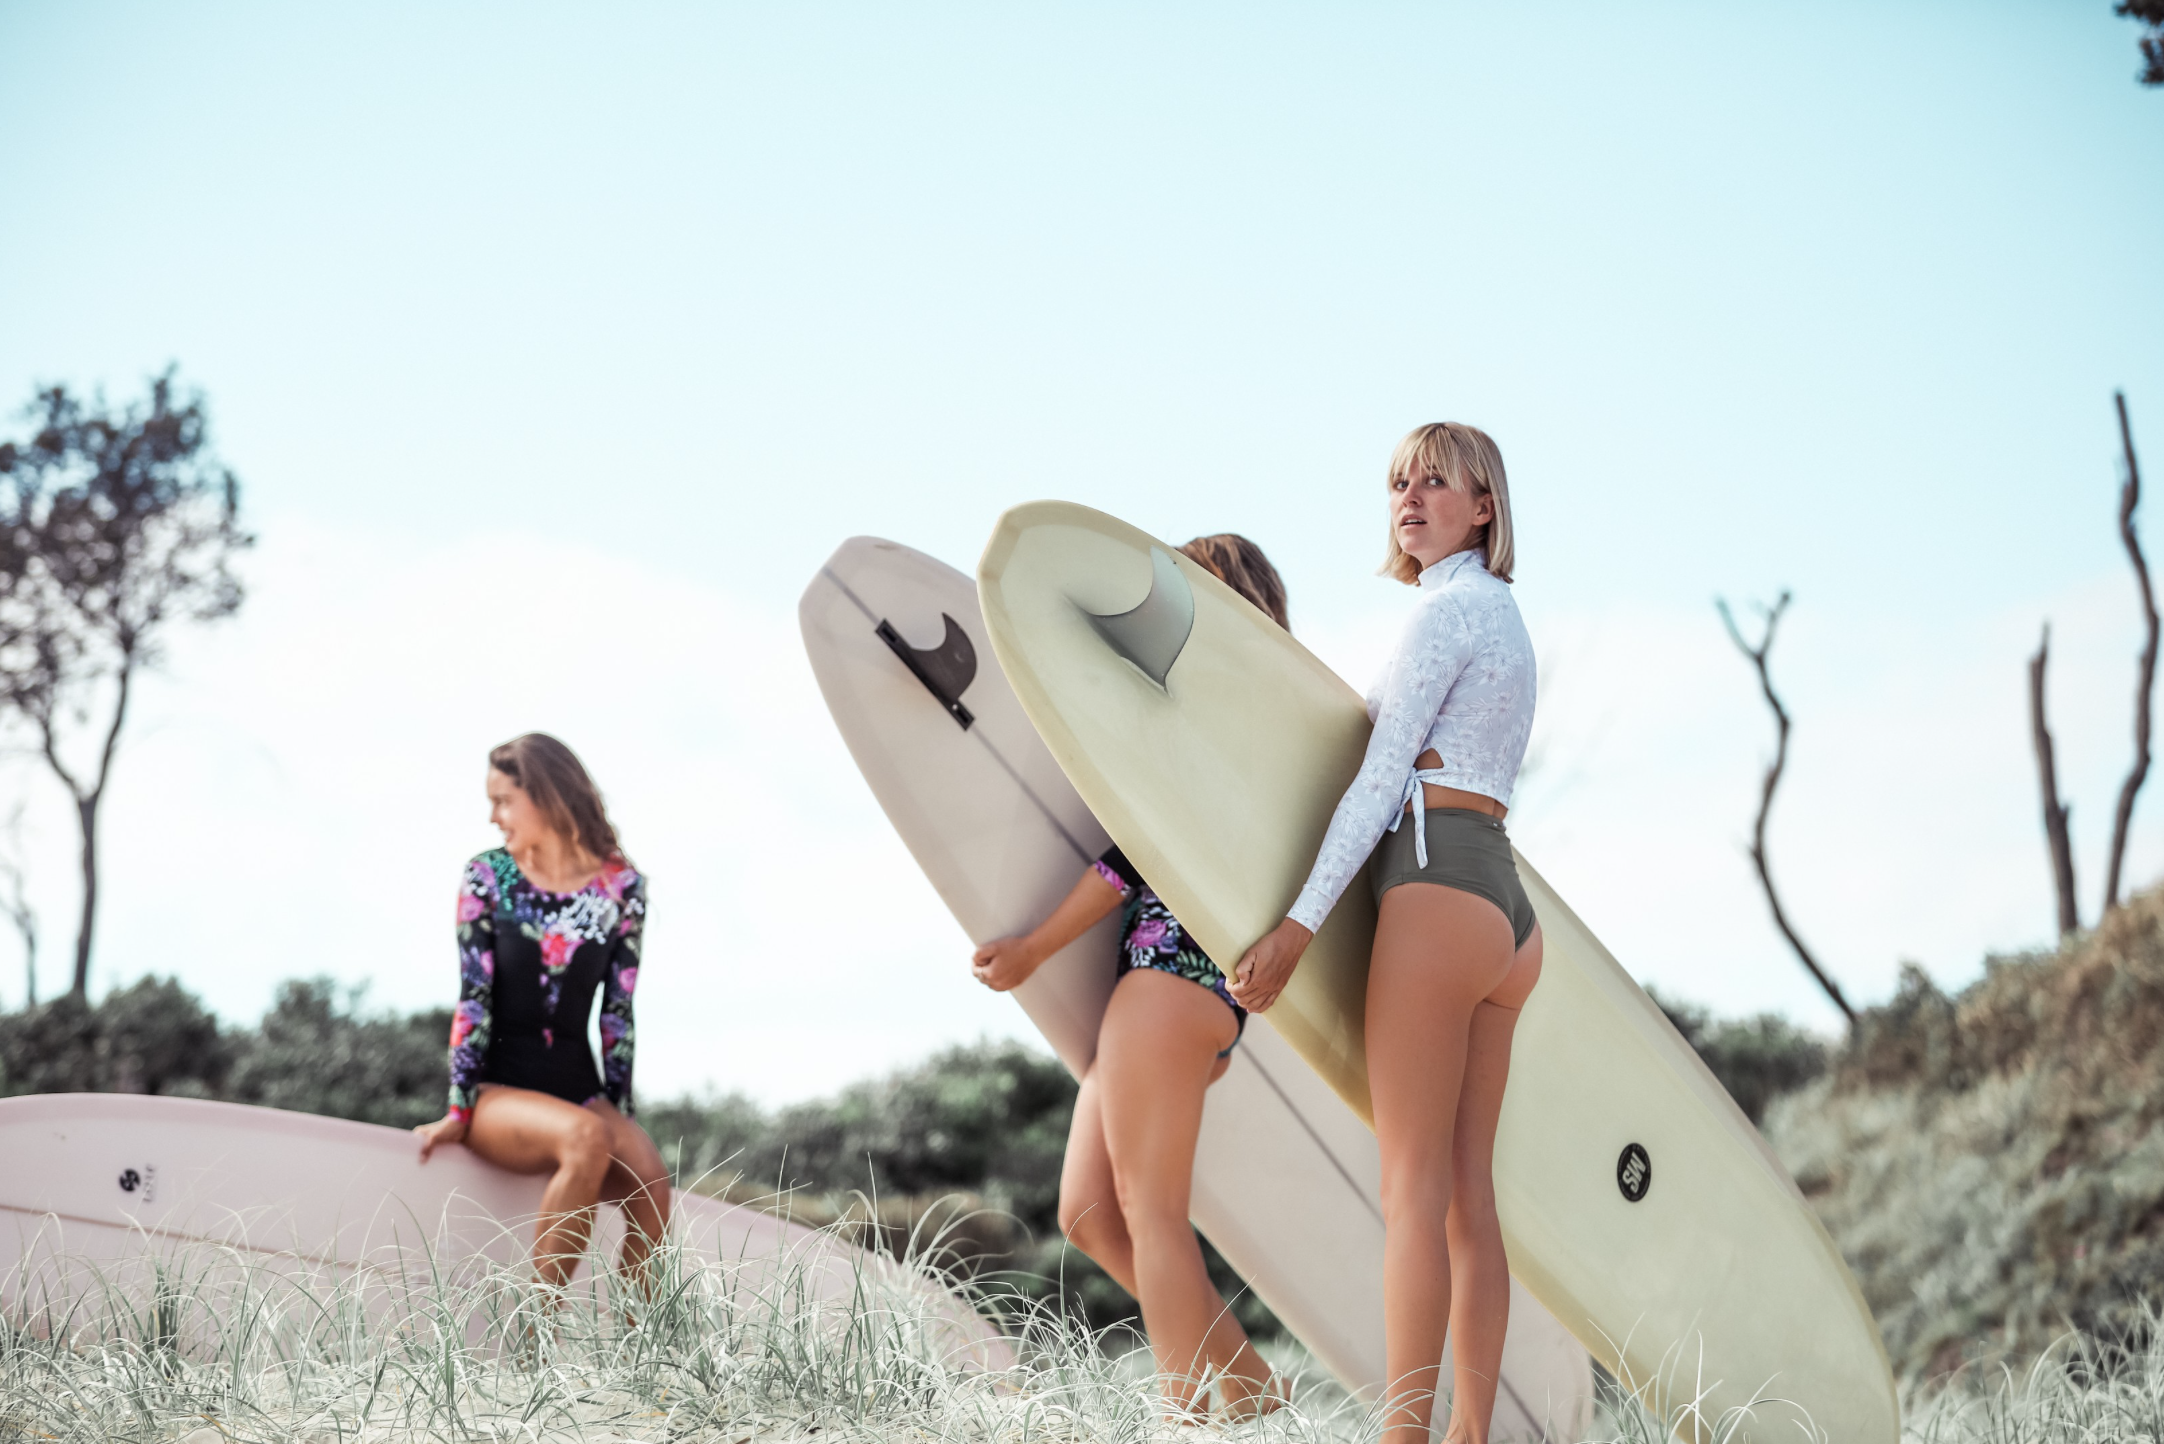 LIVING THE AUSTRALIAN DREAM - Photography by Cécilia Thibier